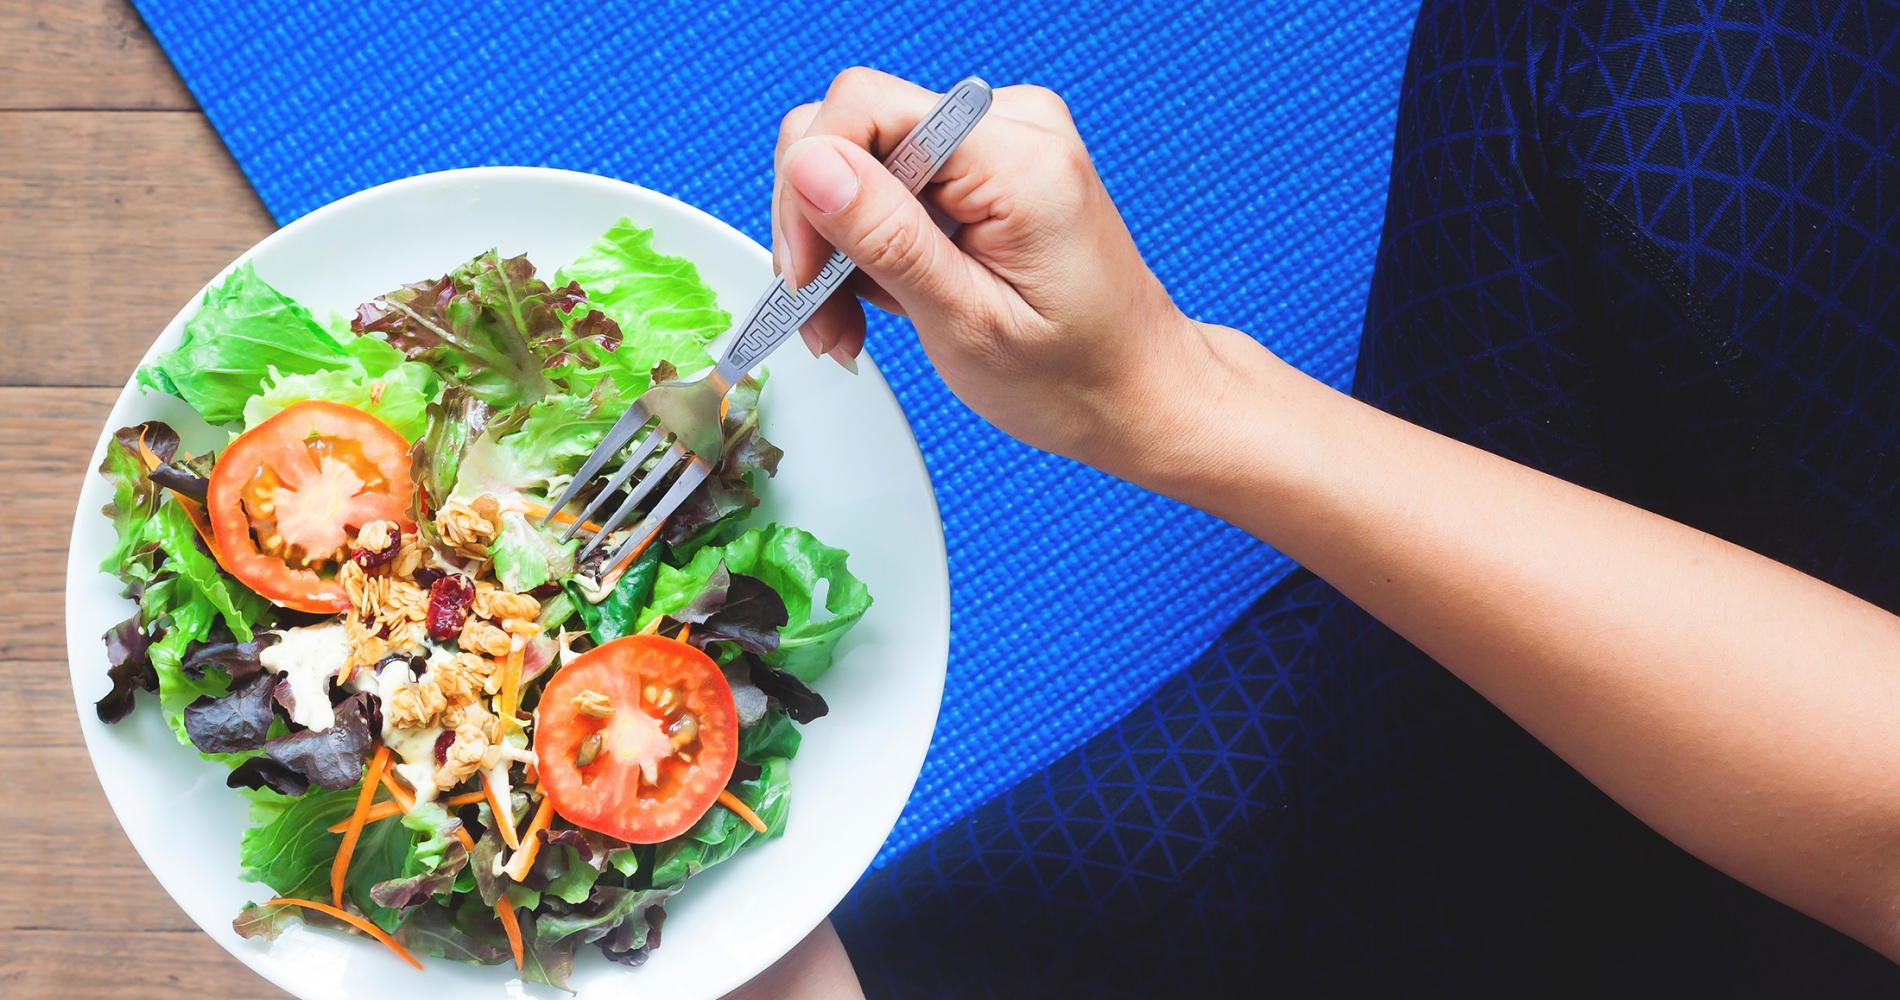 An arm holding a fork over a white bowl filled with salad greens and tomatoes.